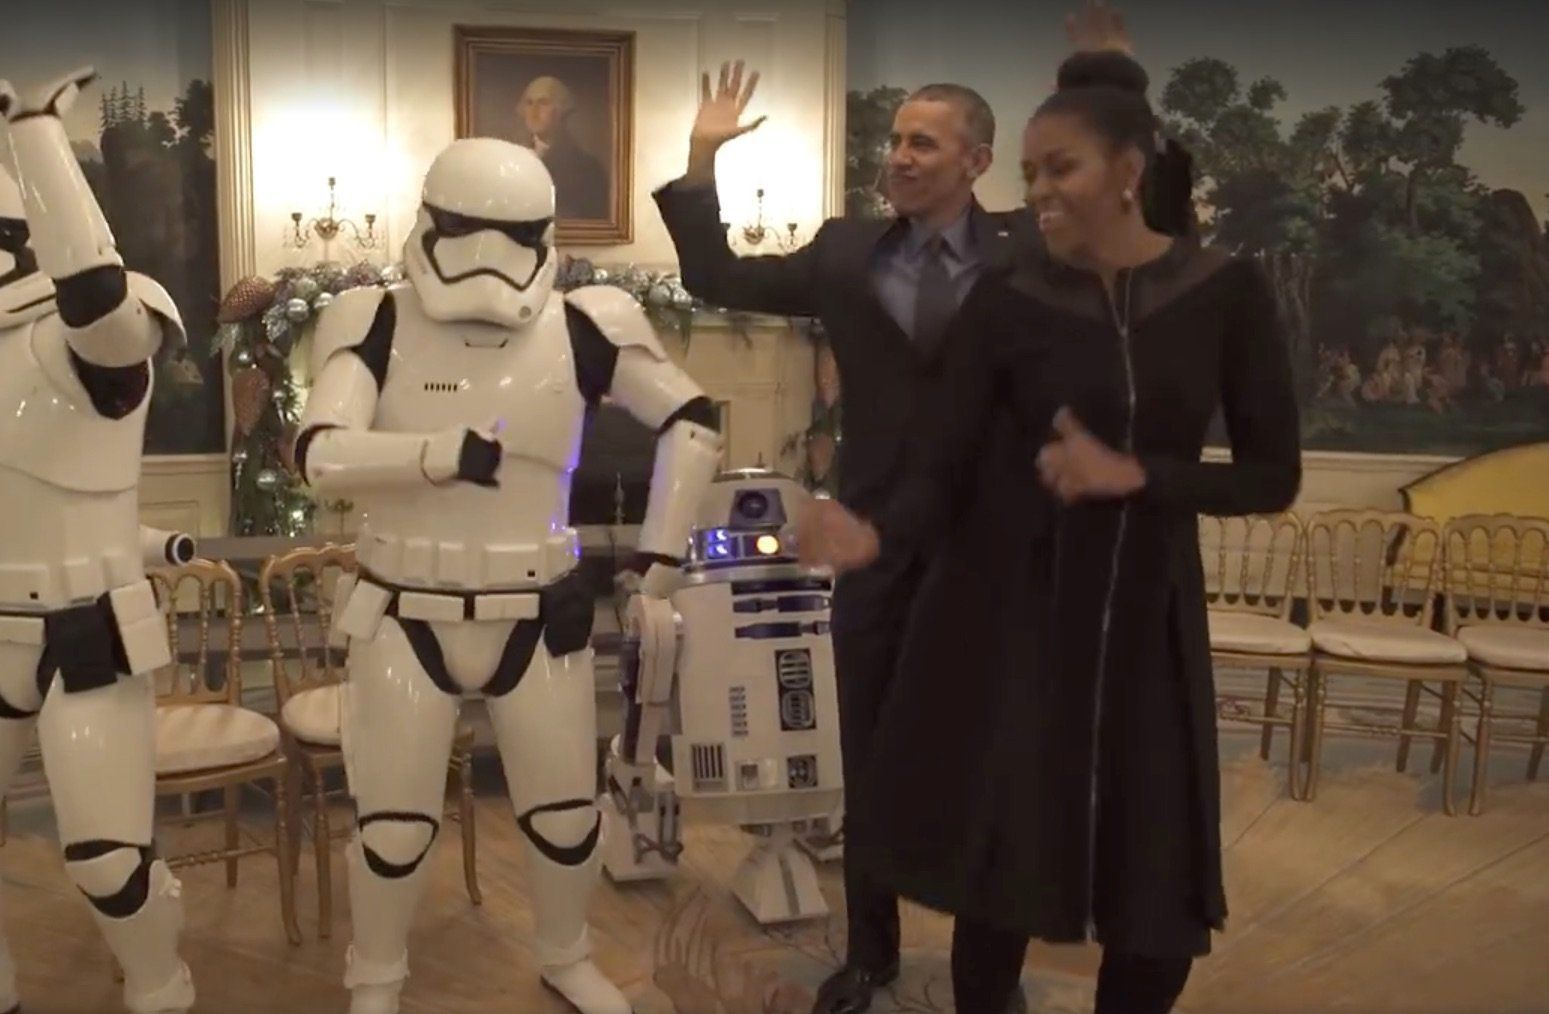 President Obama and the First Lady dance.